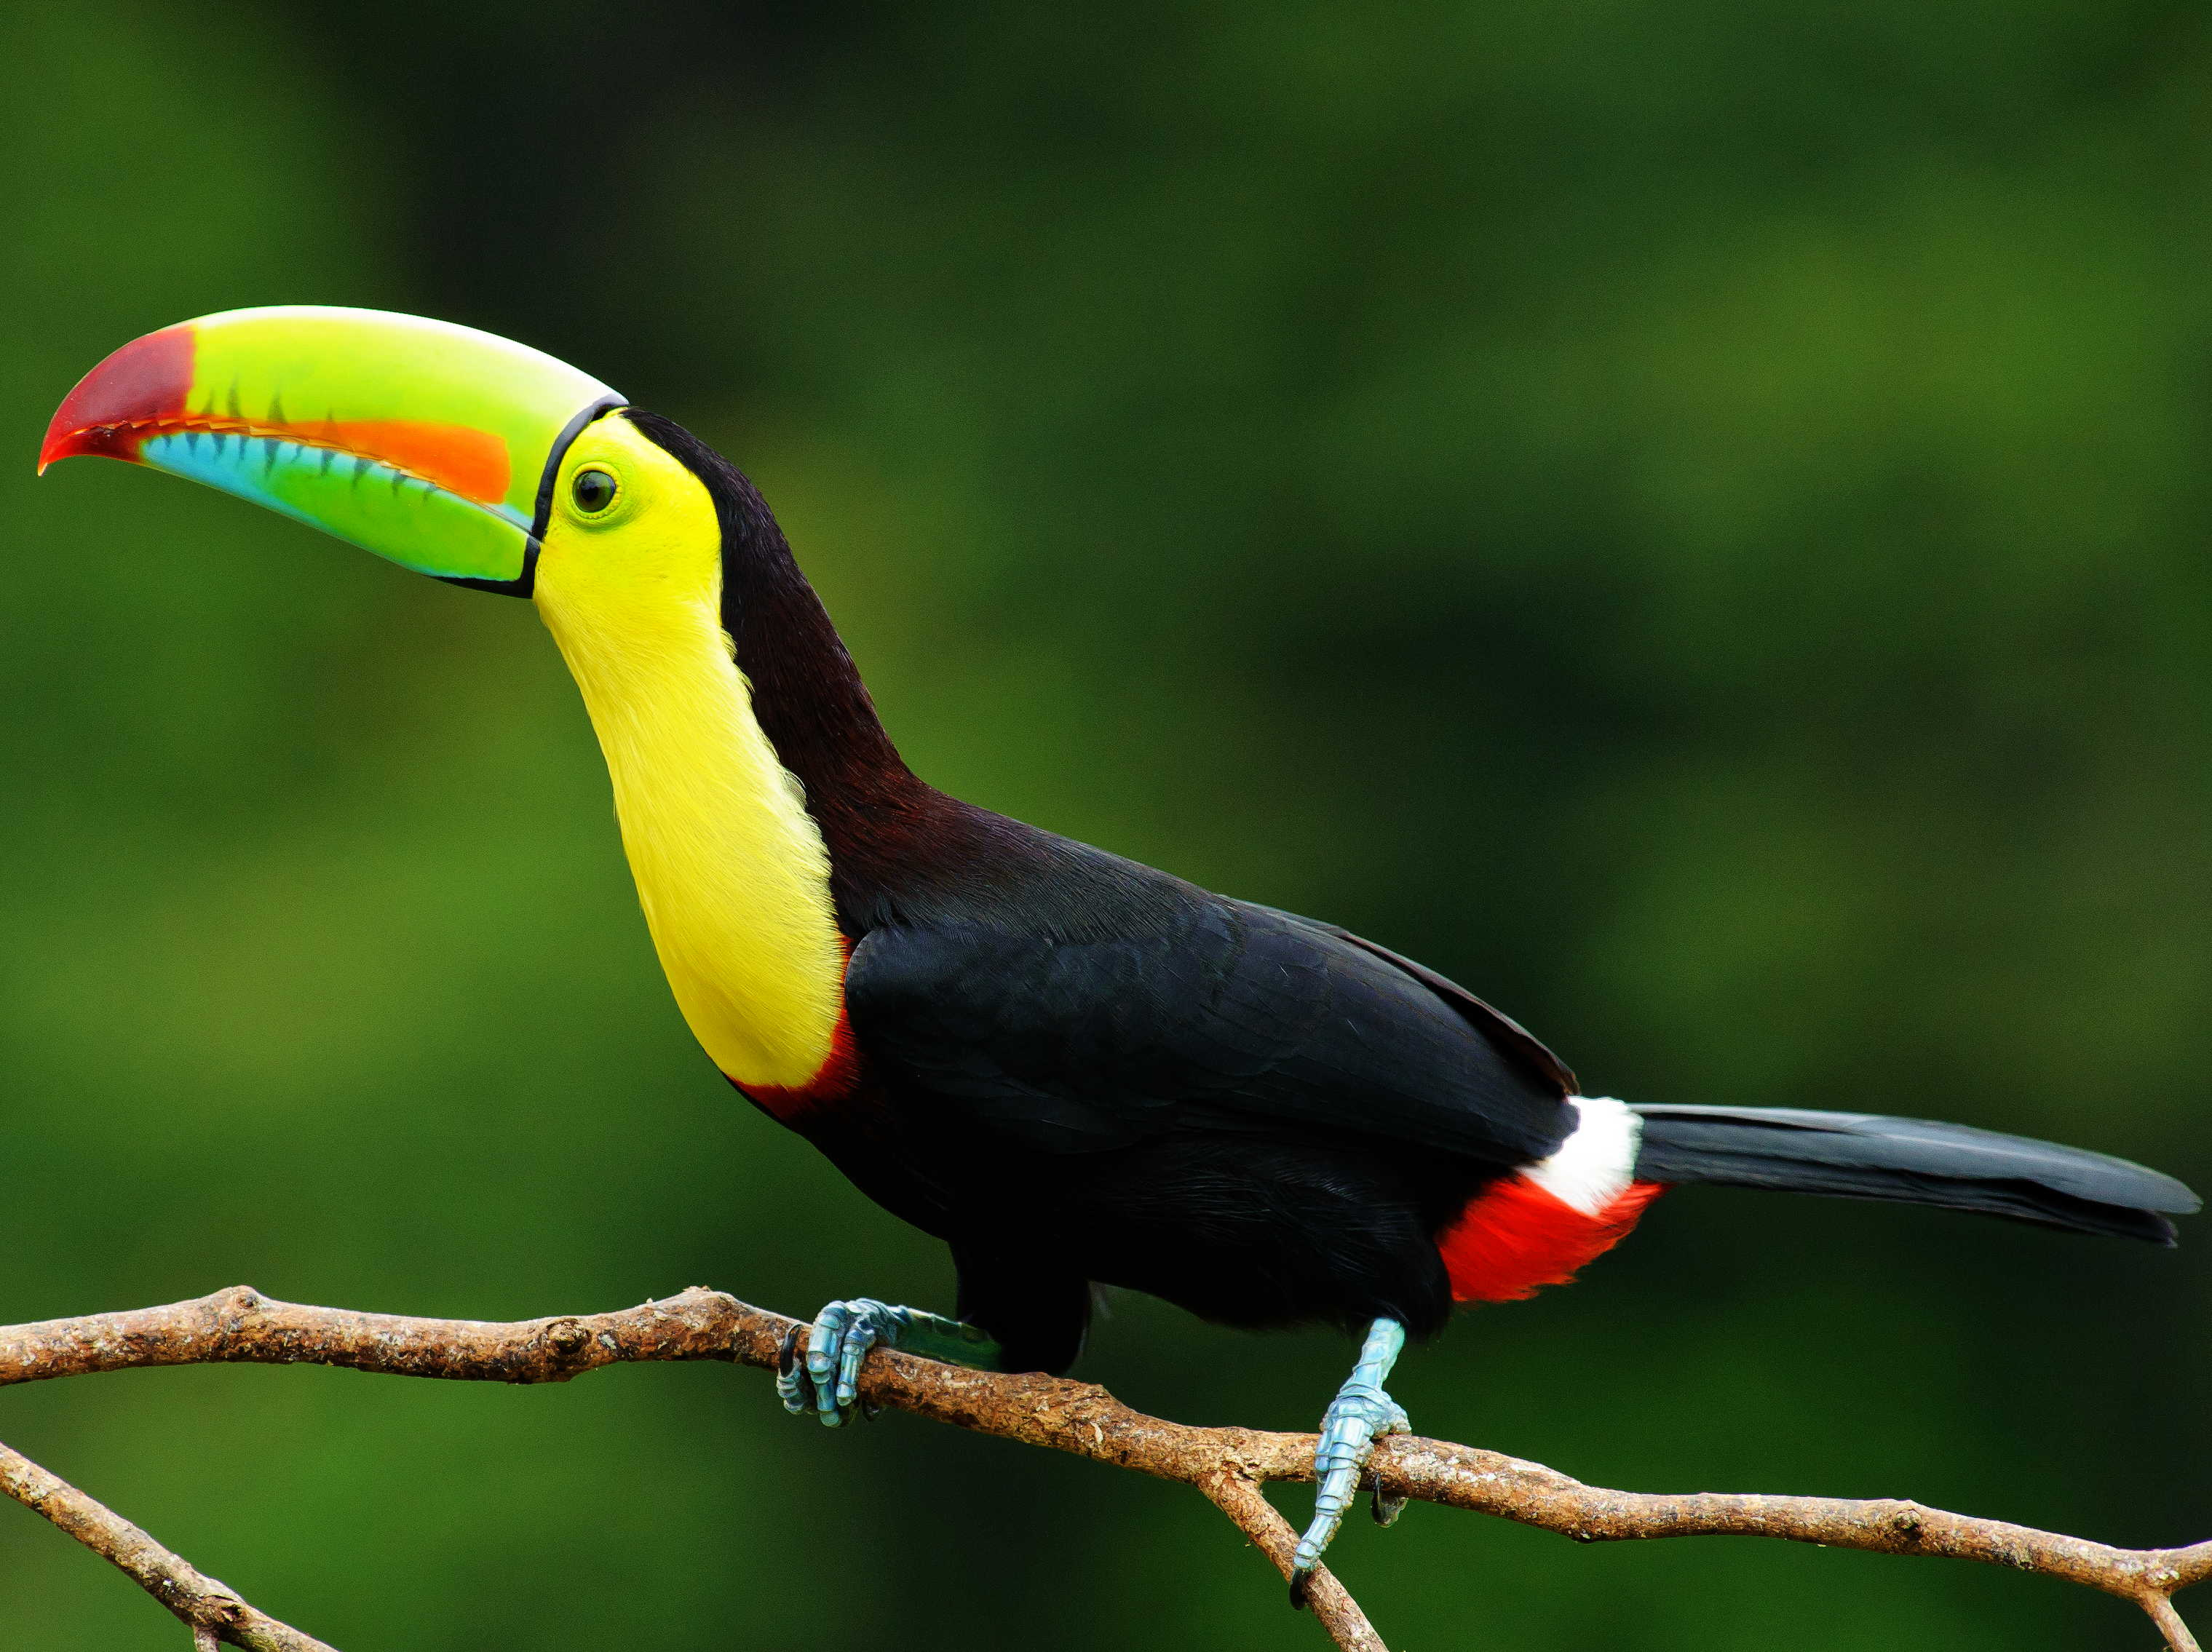 https://i0.wp.com/www.birdlist.org/images/nature_pictures/birds/keel_billed_toucan.jpg